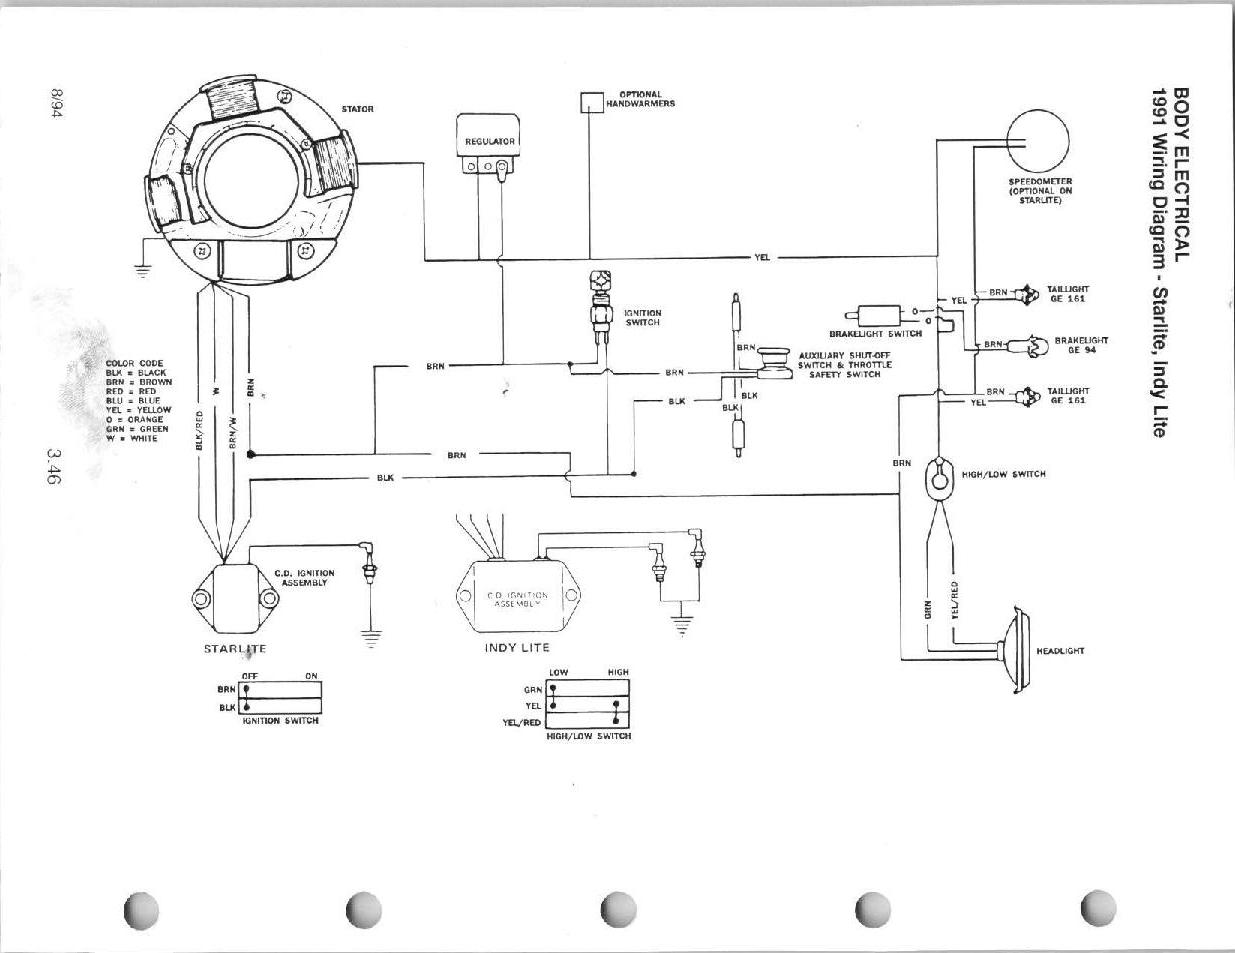 193601 polaris wiring diagram needed 20111221153640205_18890 polaris wiring diagram needed 1997 polaris sportsman 500 wiring diagram at creativeand.co